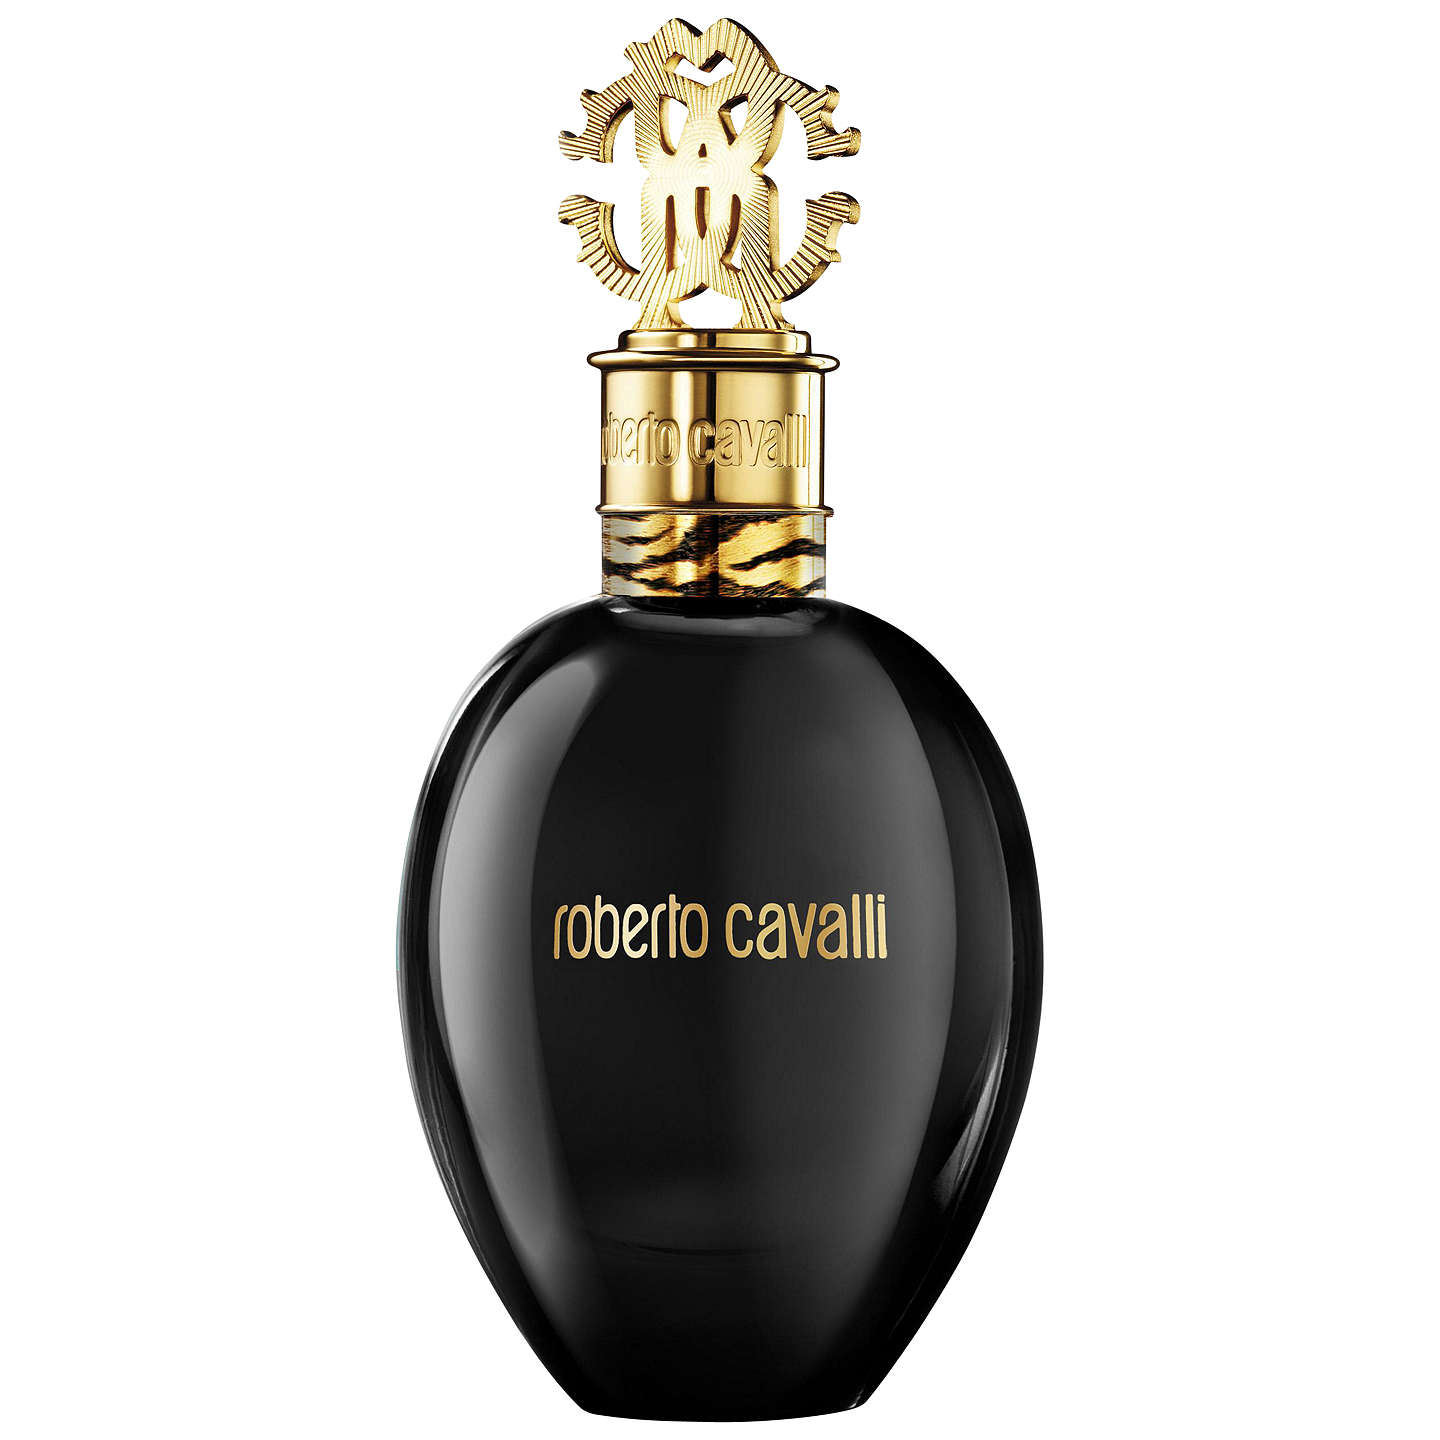 BuyRoberto Cavalli Nero Assoluto for Women Eau de Parfum, 50ml Online at johnlewis.com